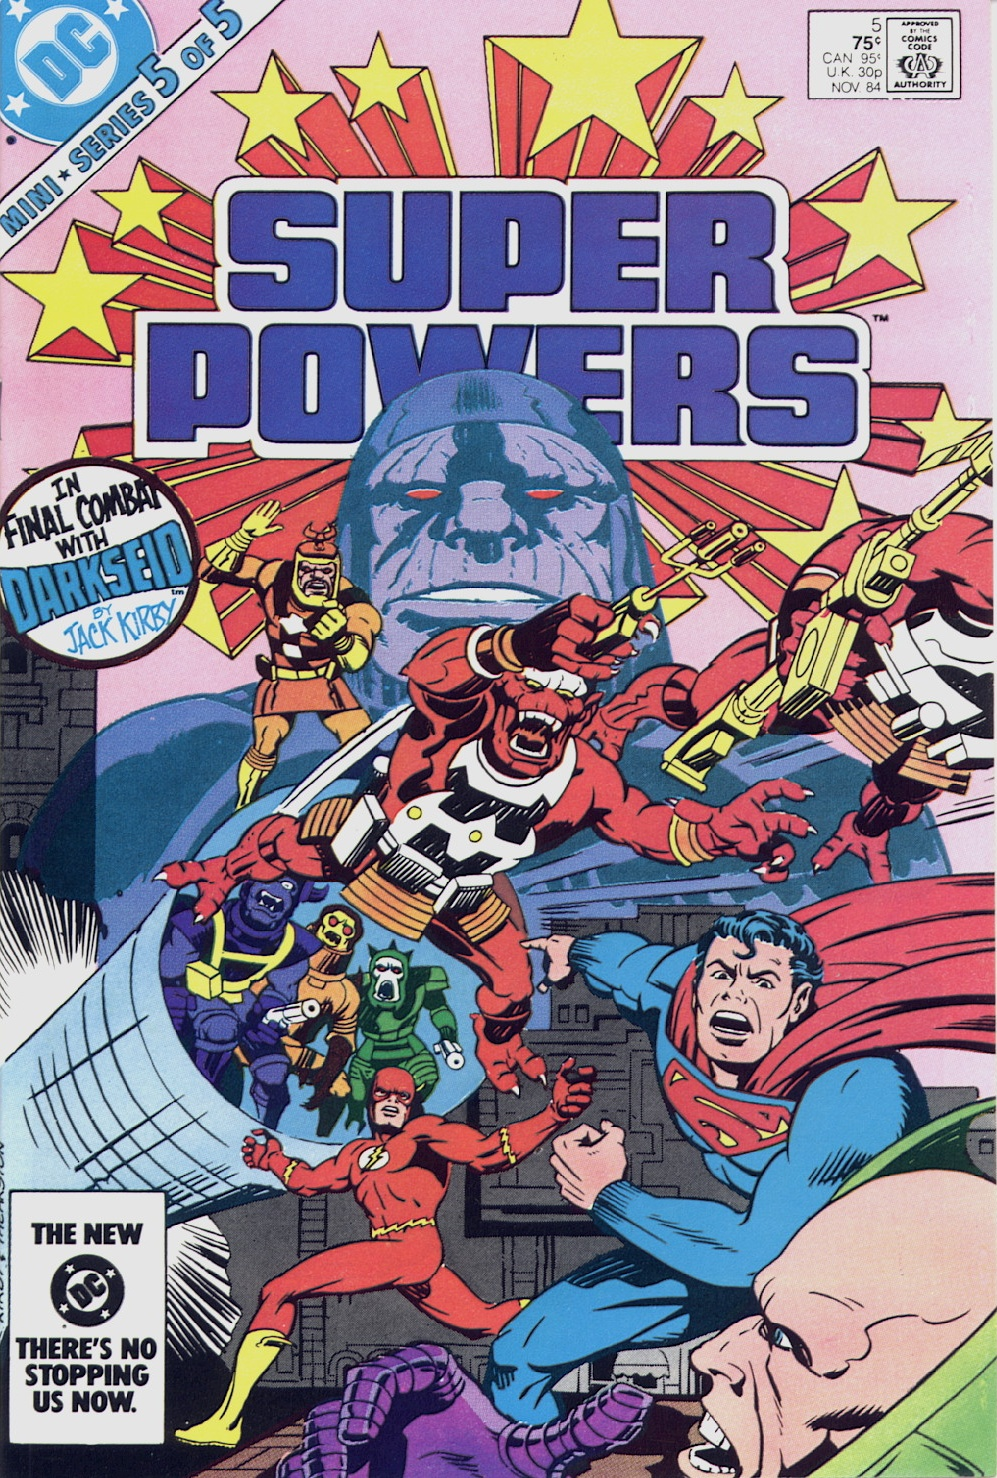 Super Powers #5 – Reviews Of Old Comics